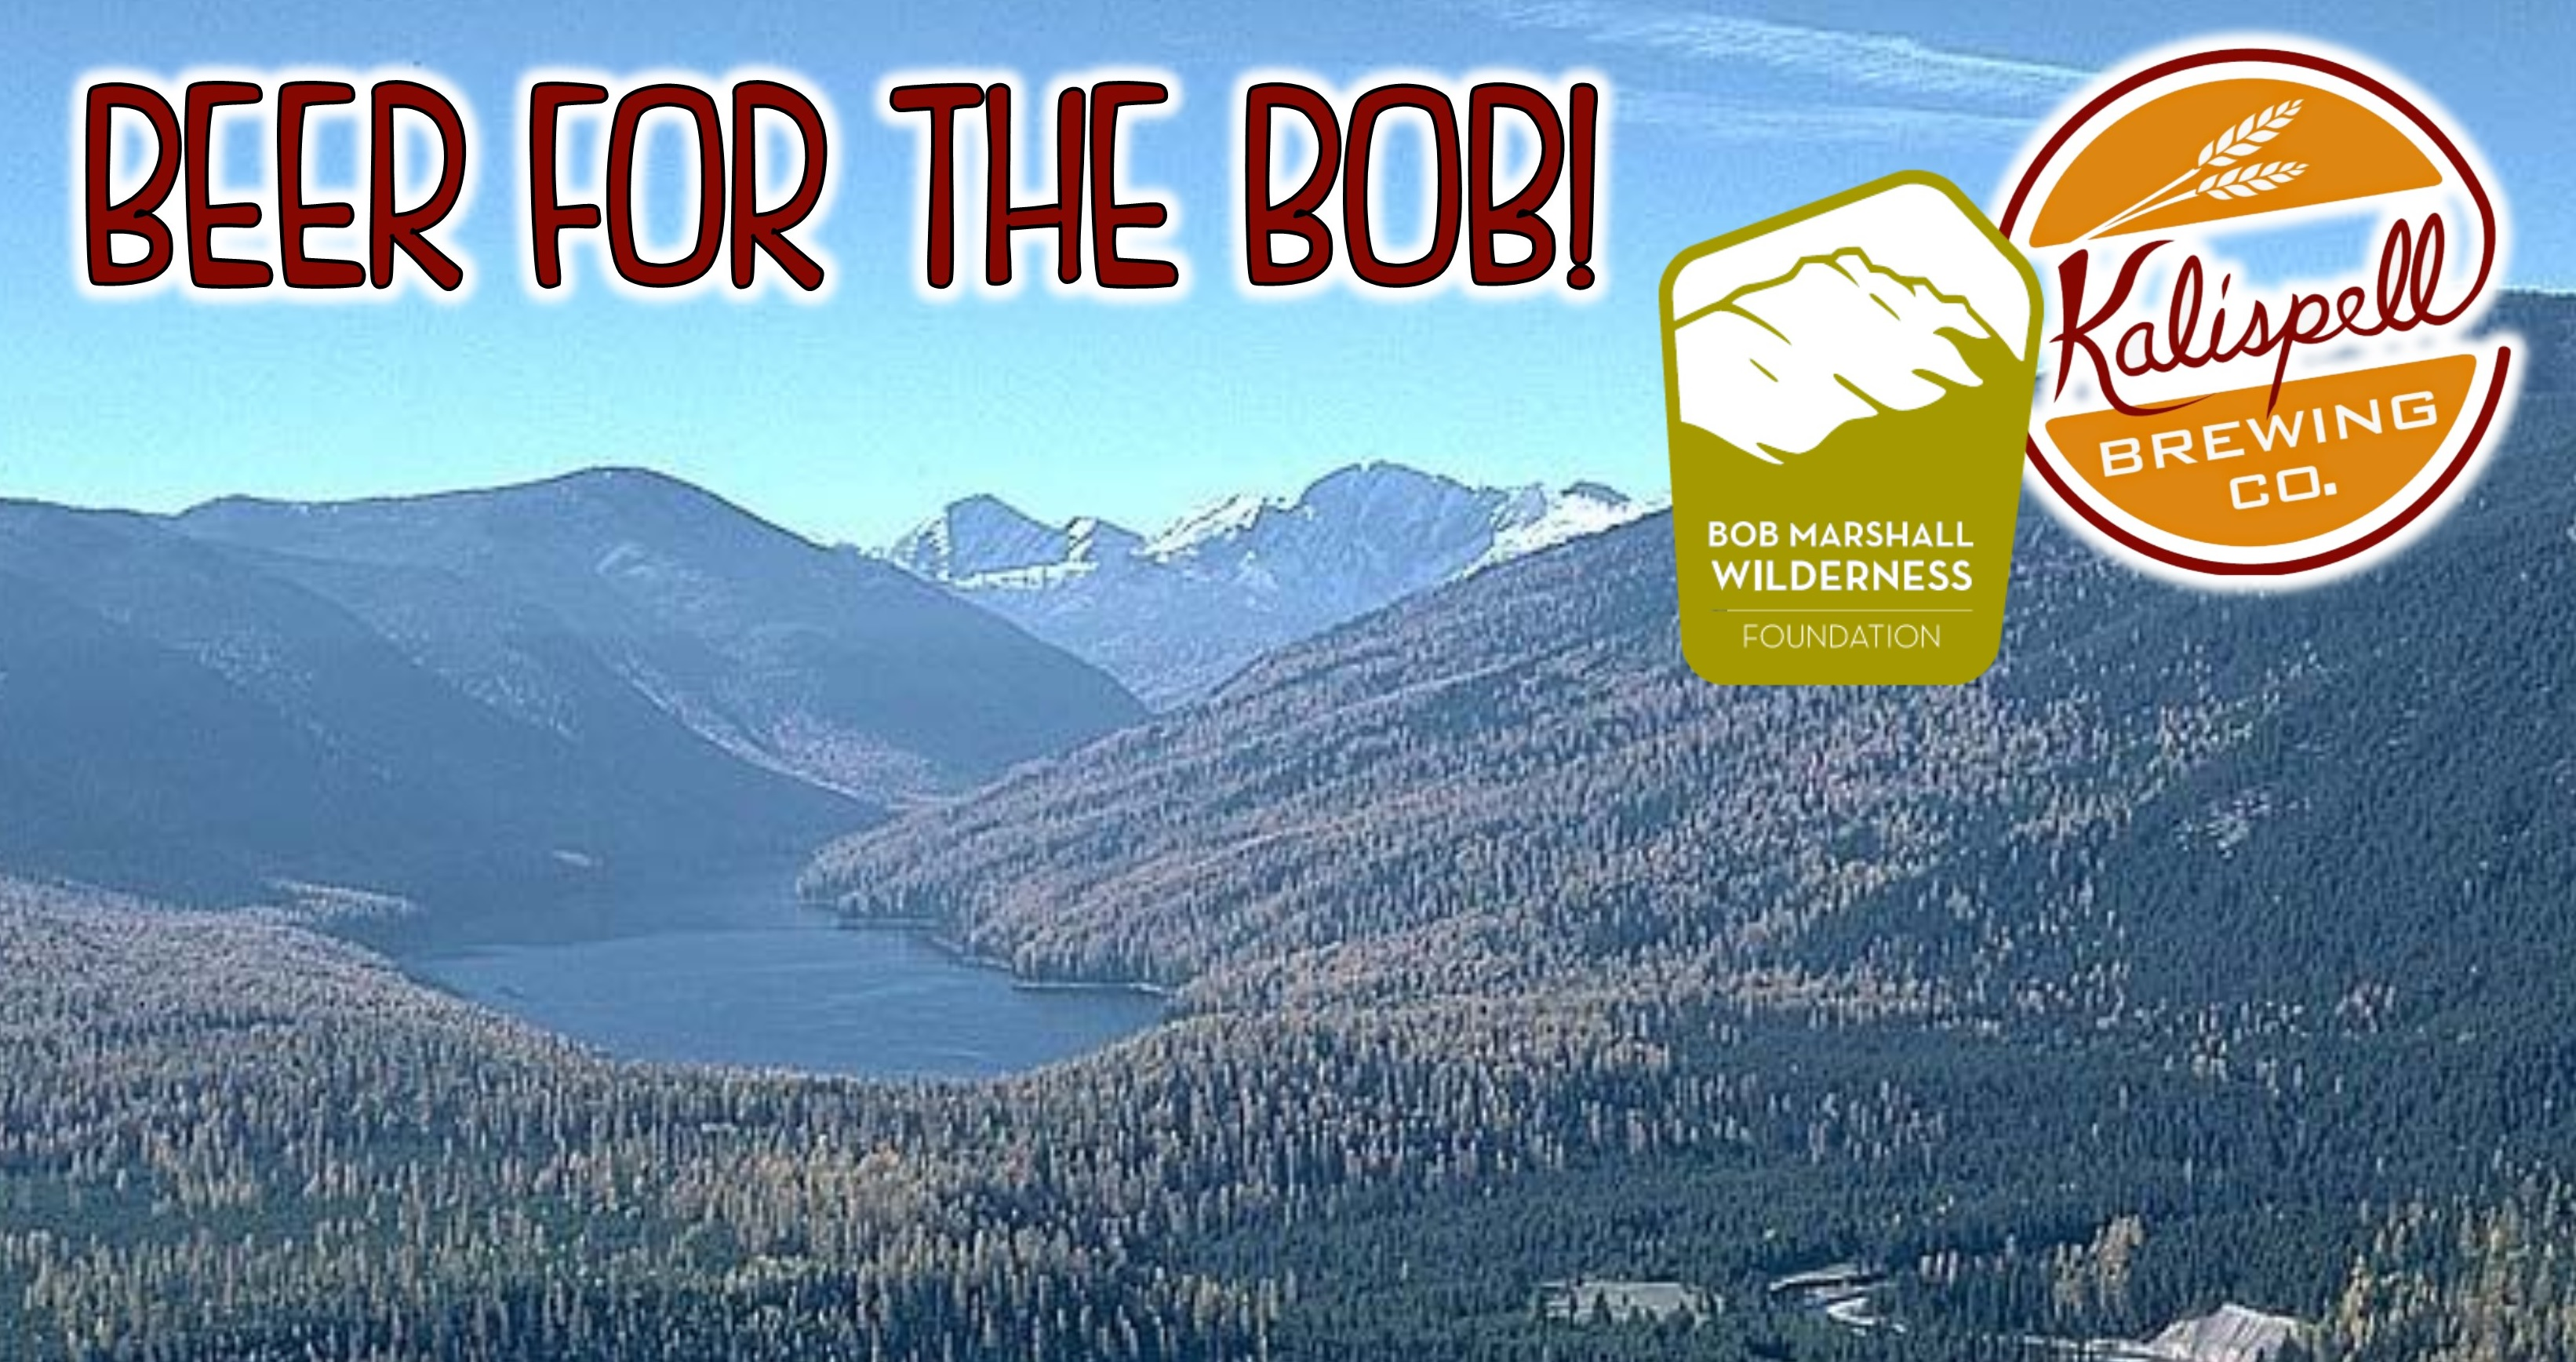 Flying Fish Farmhouse Summer Ale Beer For The Bob A Bob Marshall Wilderness Foundation